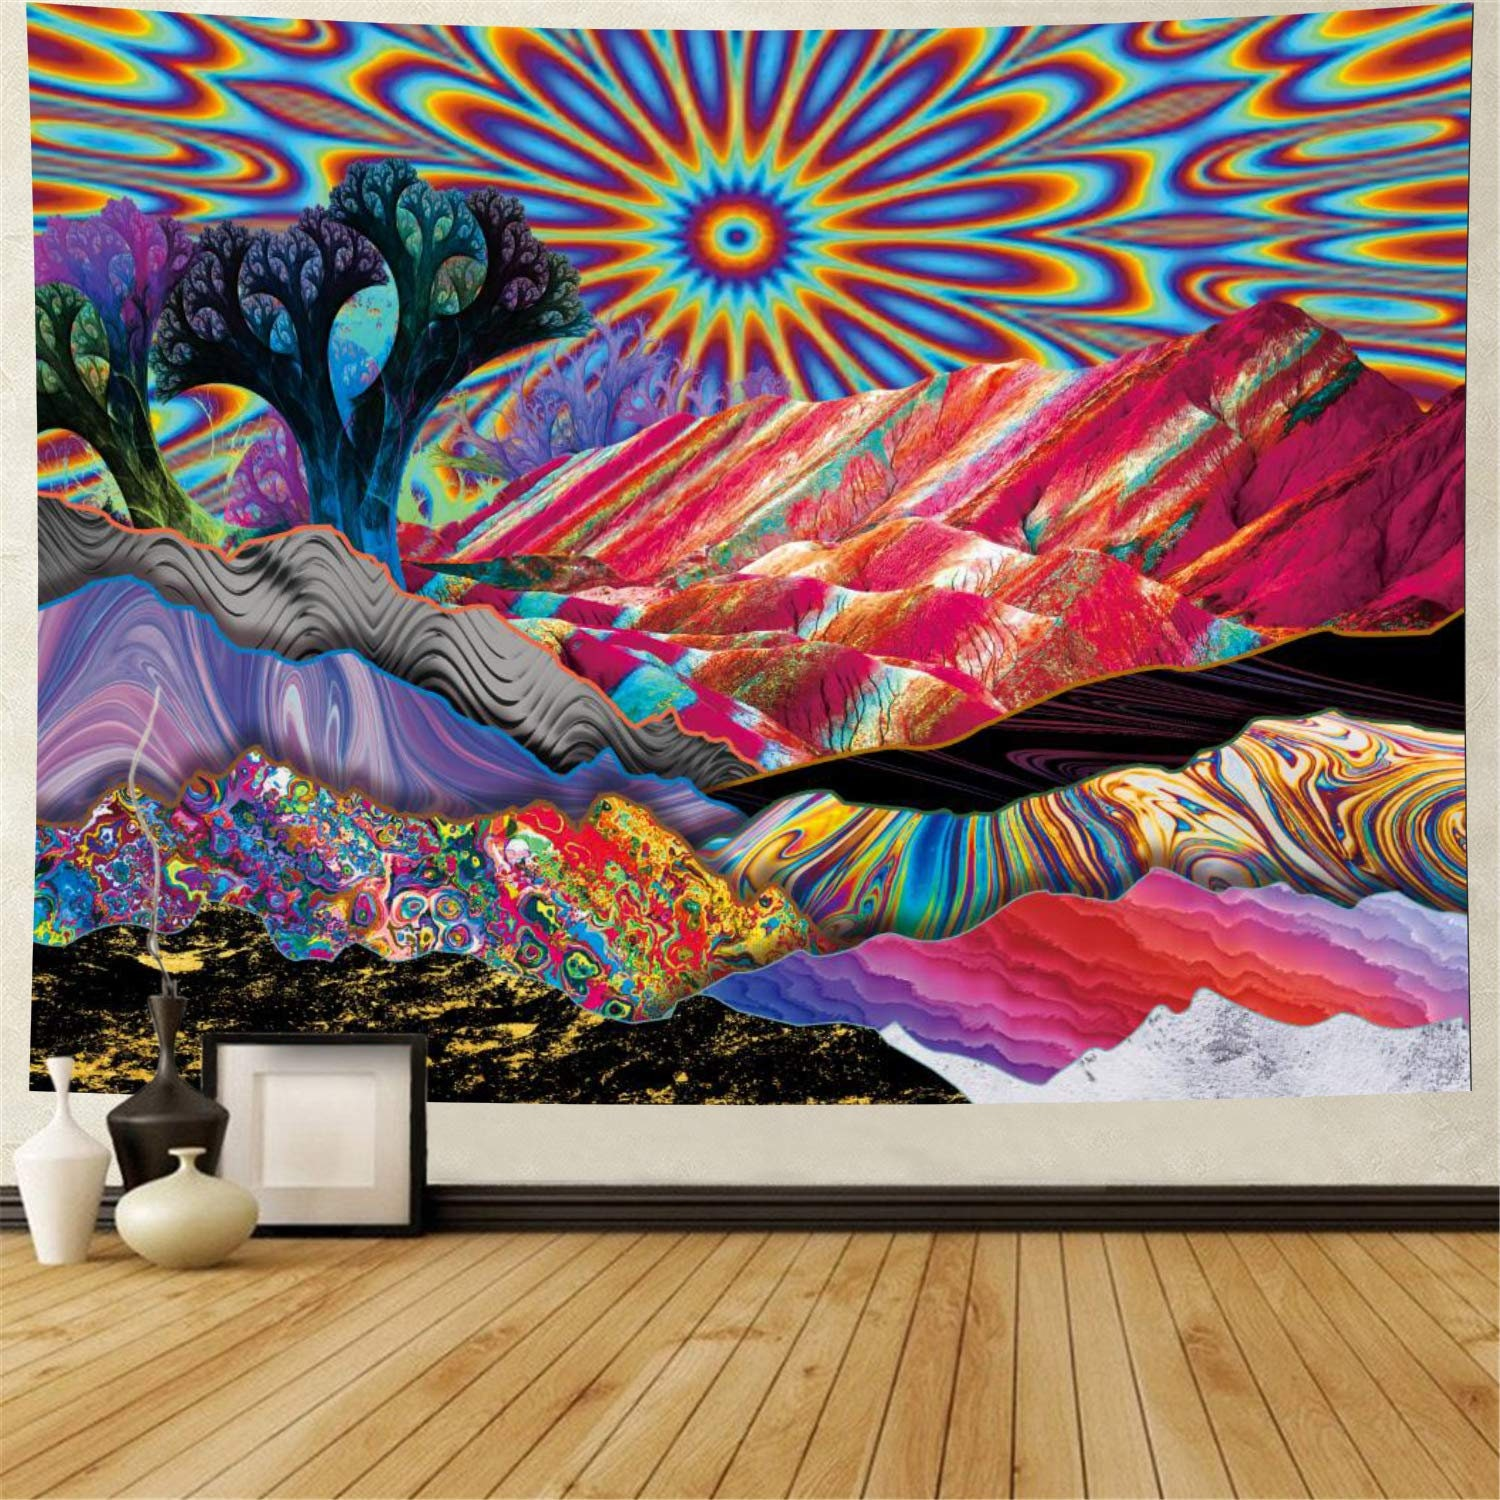 Painting Mountain Wall Hanging Tapestry Psychedelic Bedroom Home Decoration